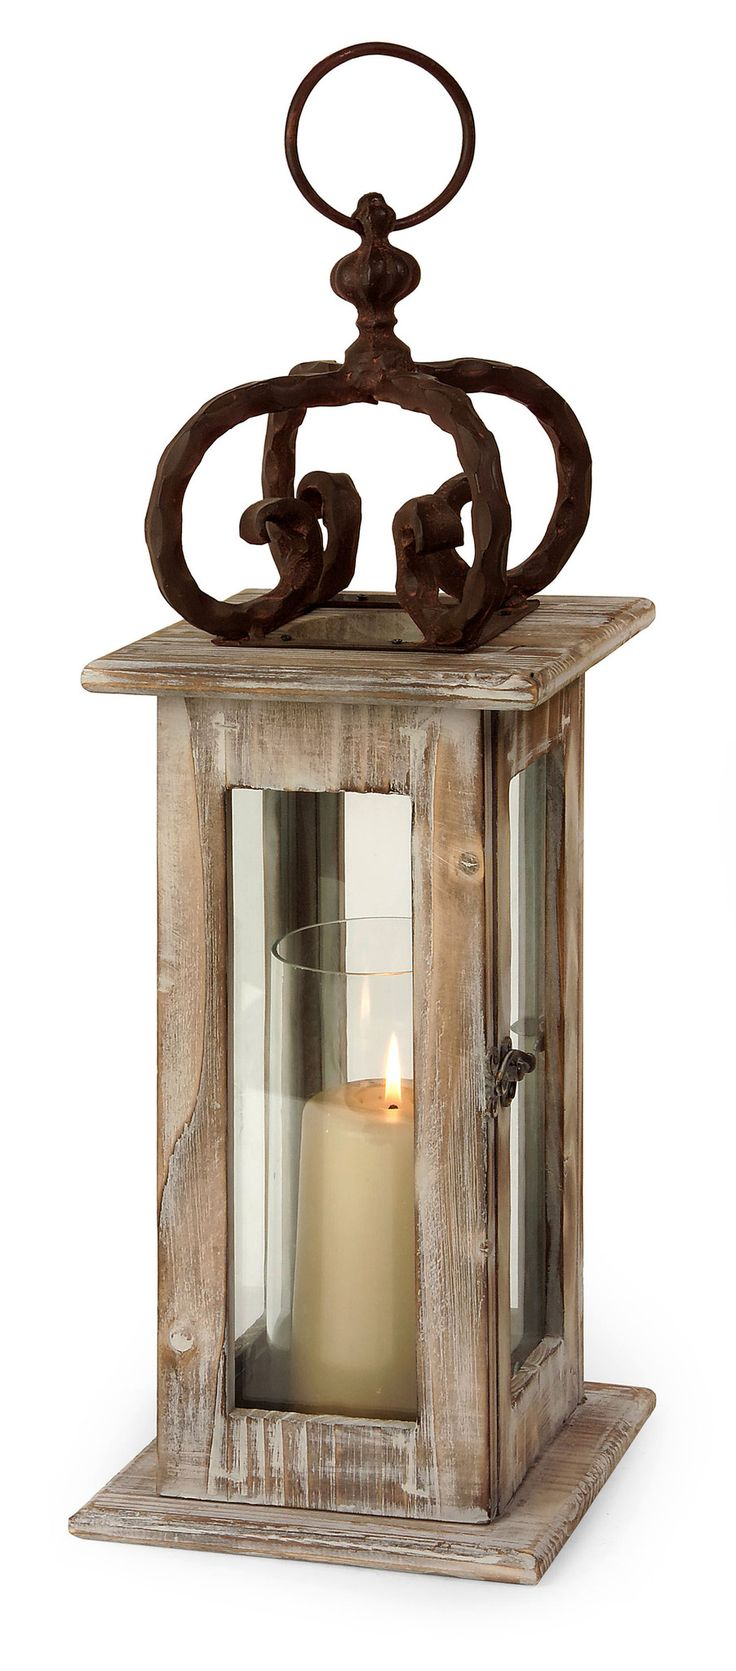 Scandinavian washed natural wood lantern with wrought iron